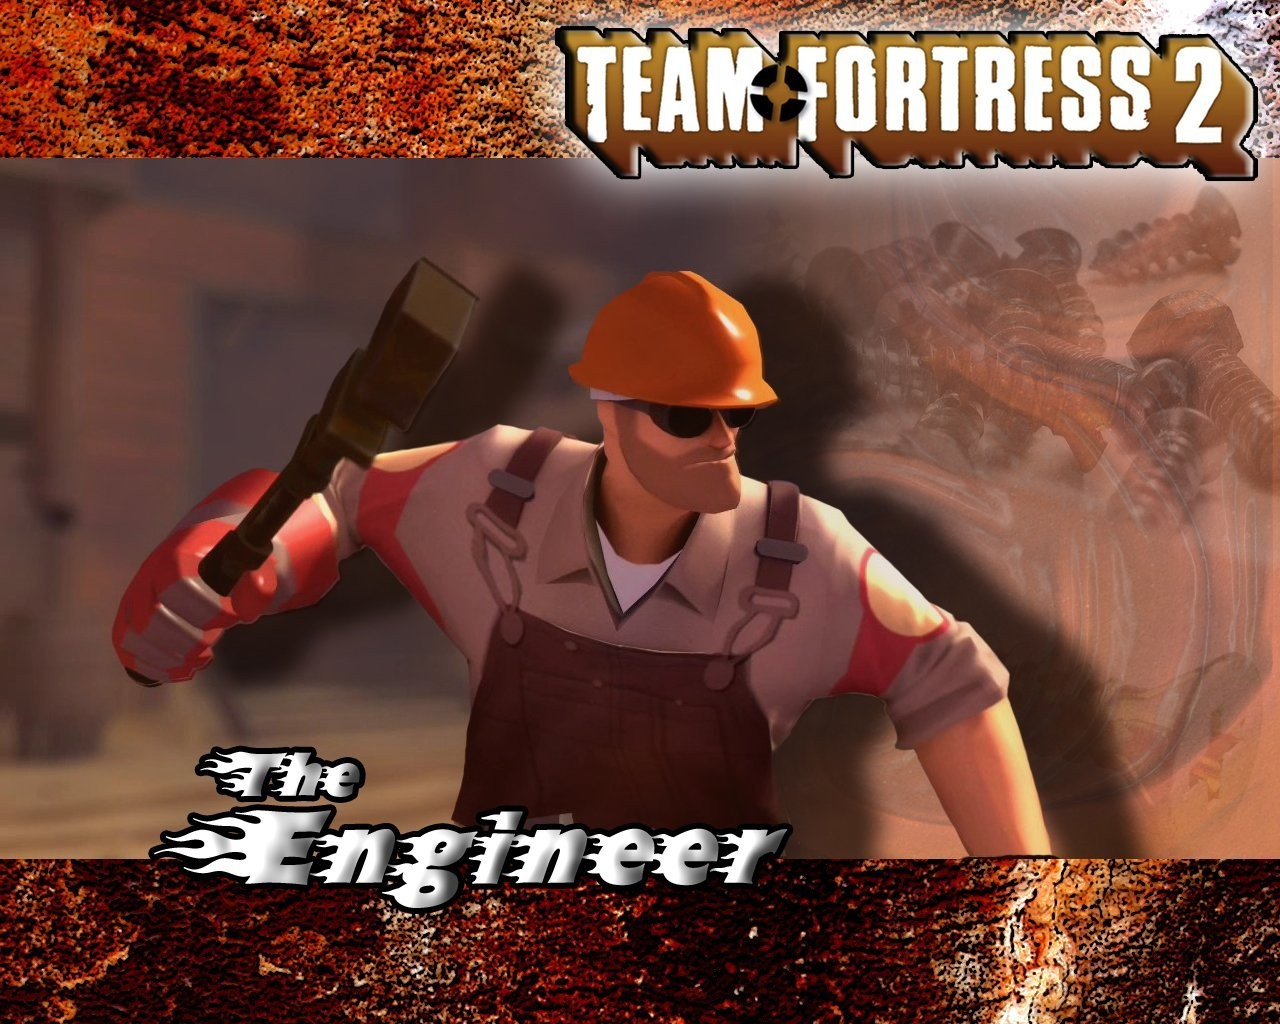 video games engineer tf2 team fortress 2 engineers